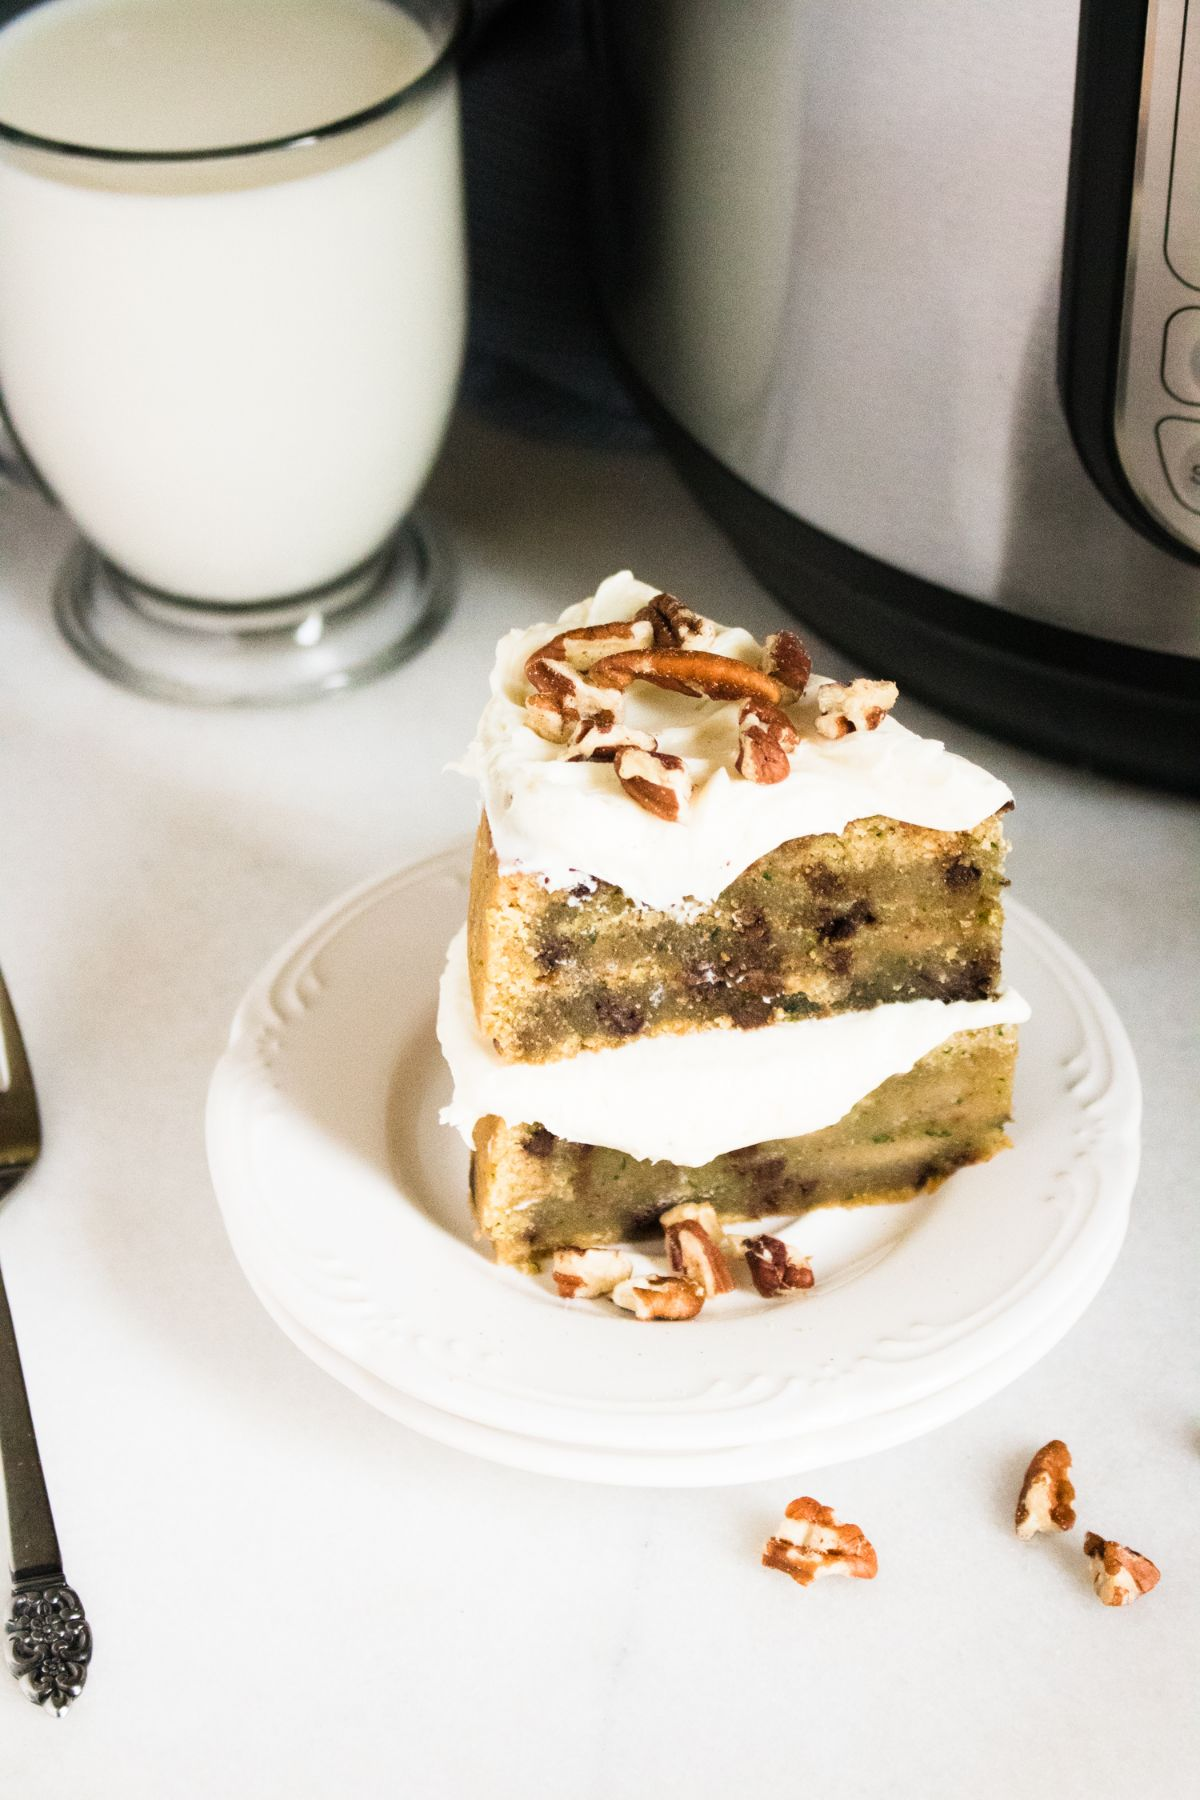 A zoomed in image of a slice of Zucchini bread with on a serving plate with a glass of milk in background